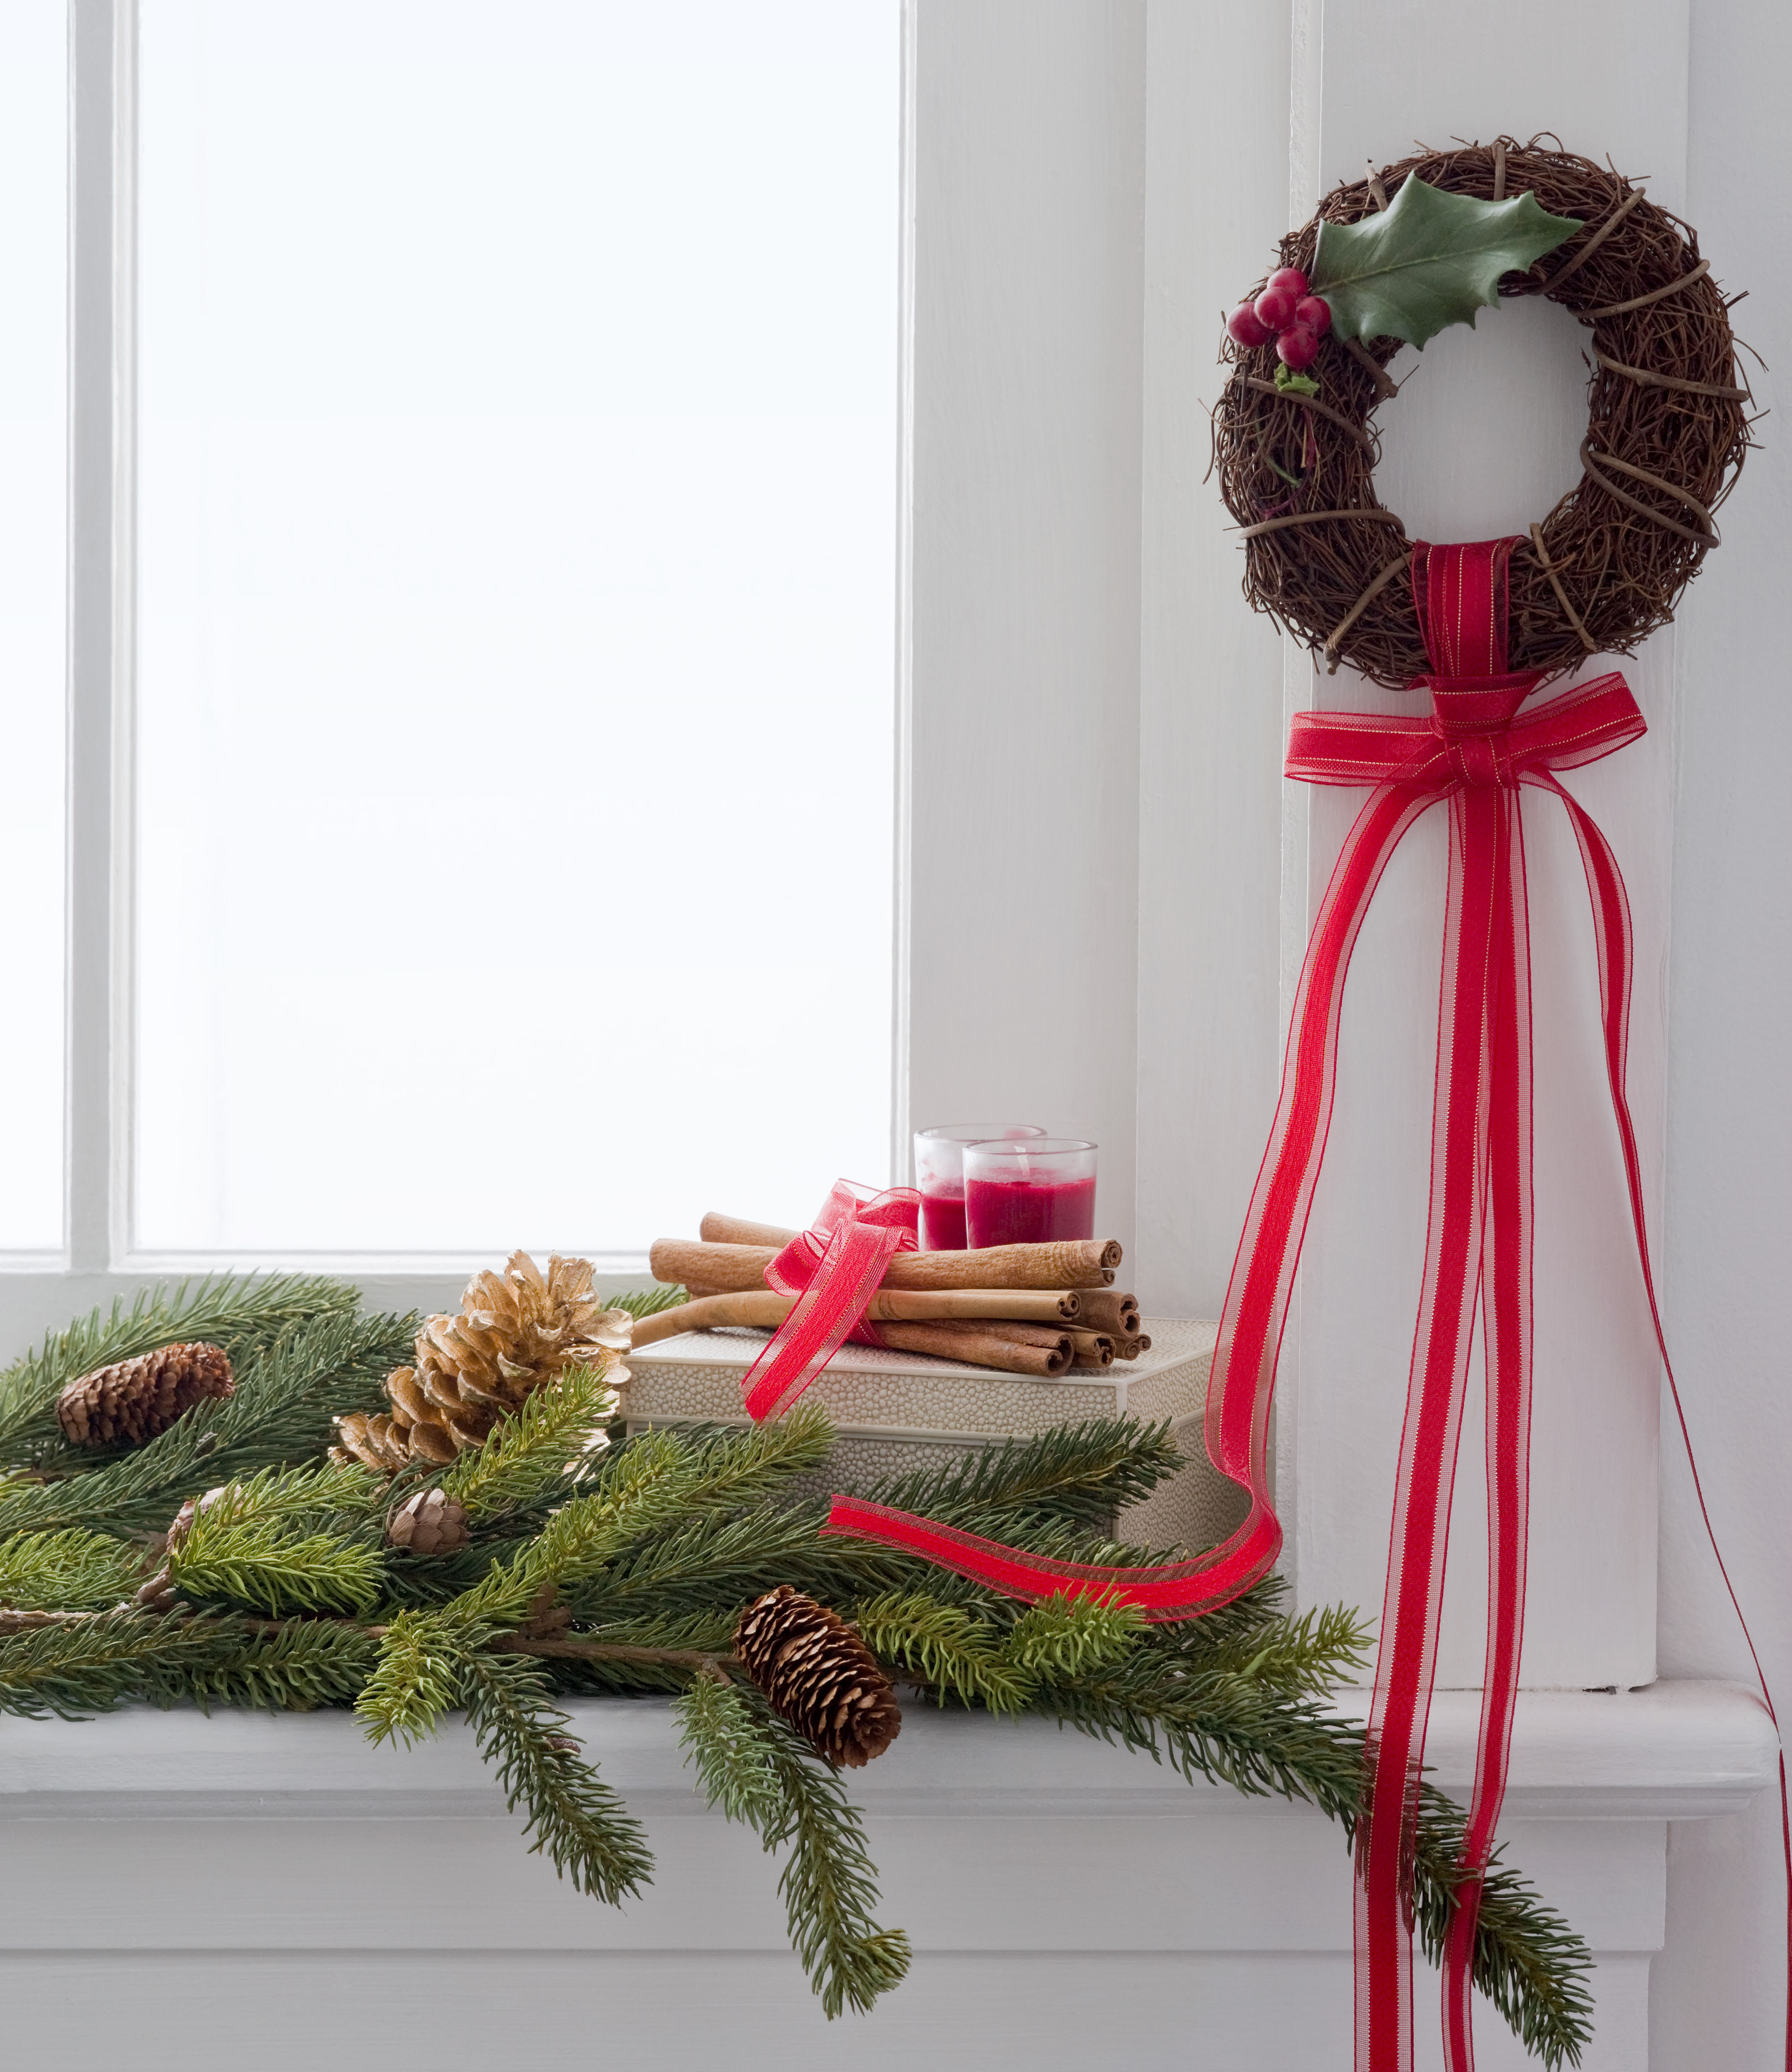 Christmas wreath and boughs on window sill